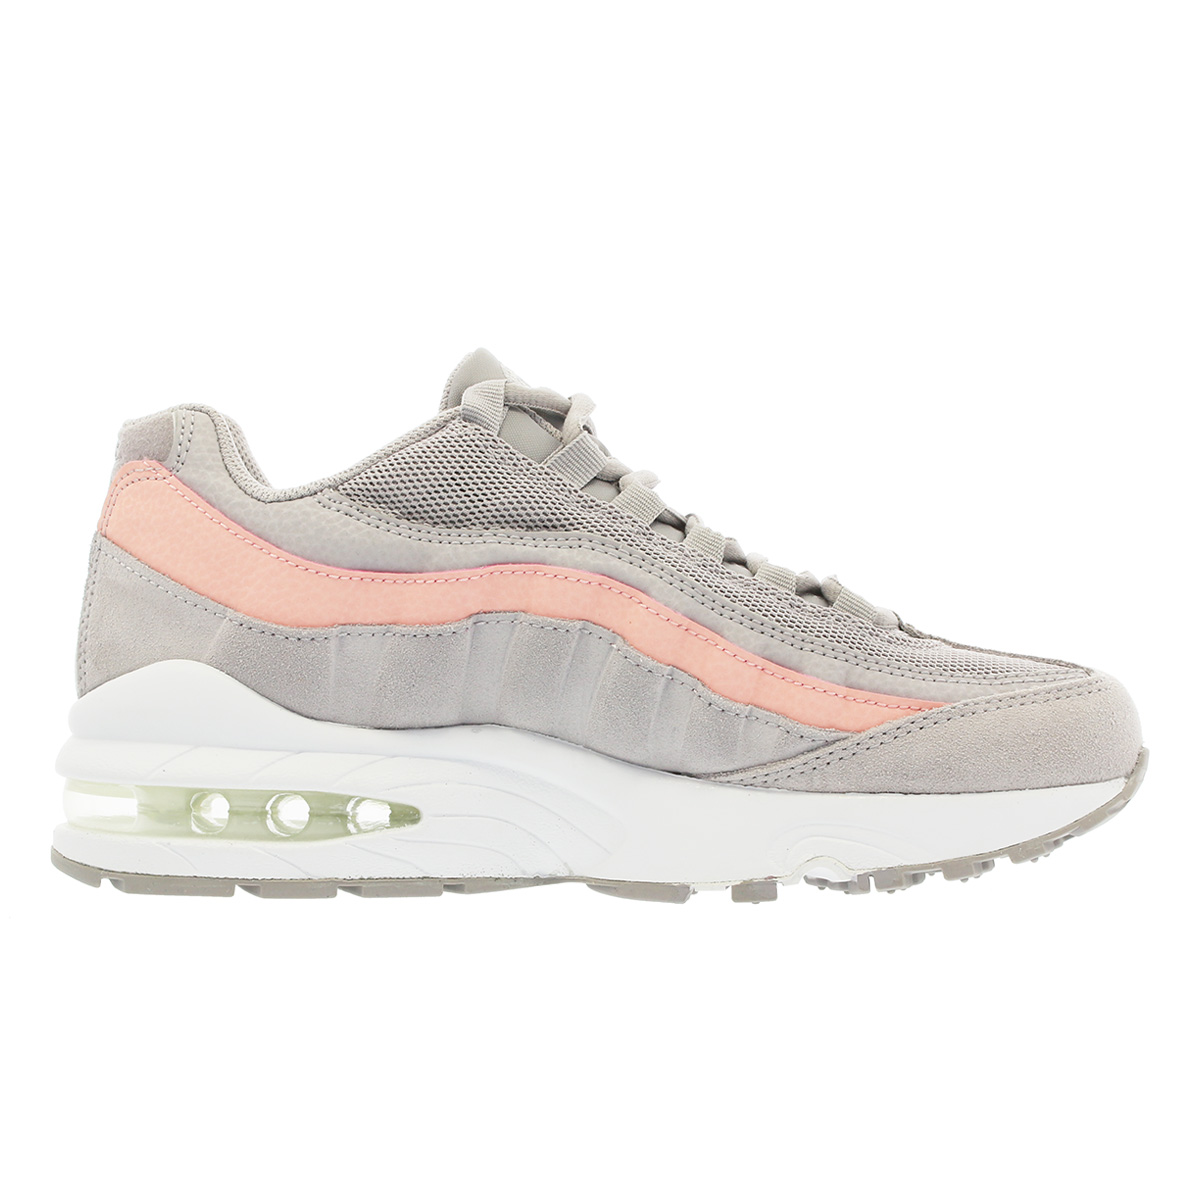 new concept 995f3 0932c NIKE AIR MAX 95 LE GS Kie Ney AMAX 95 leather GS ATOMSPHERE GREY BLEACHED  CORAL 310830-011